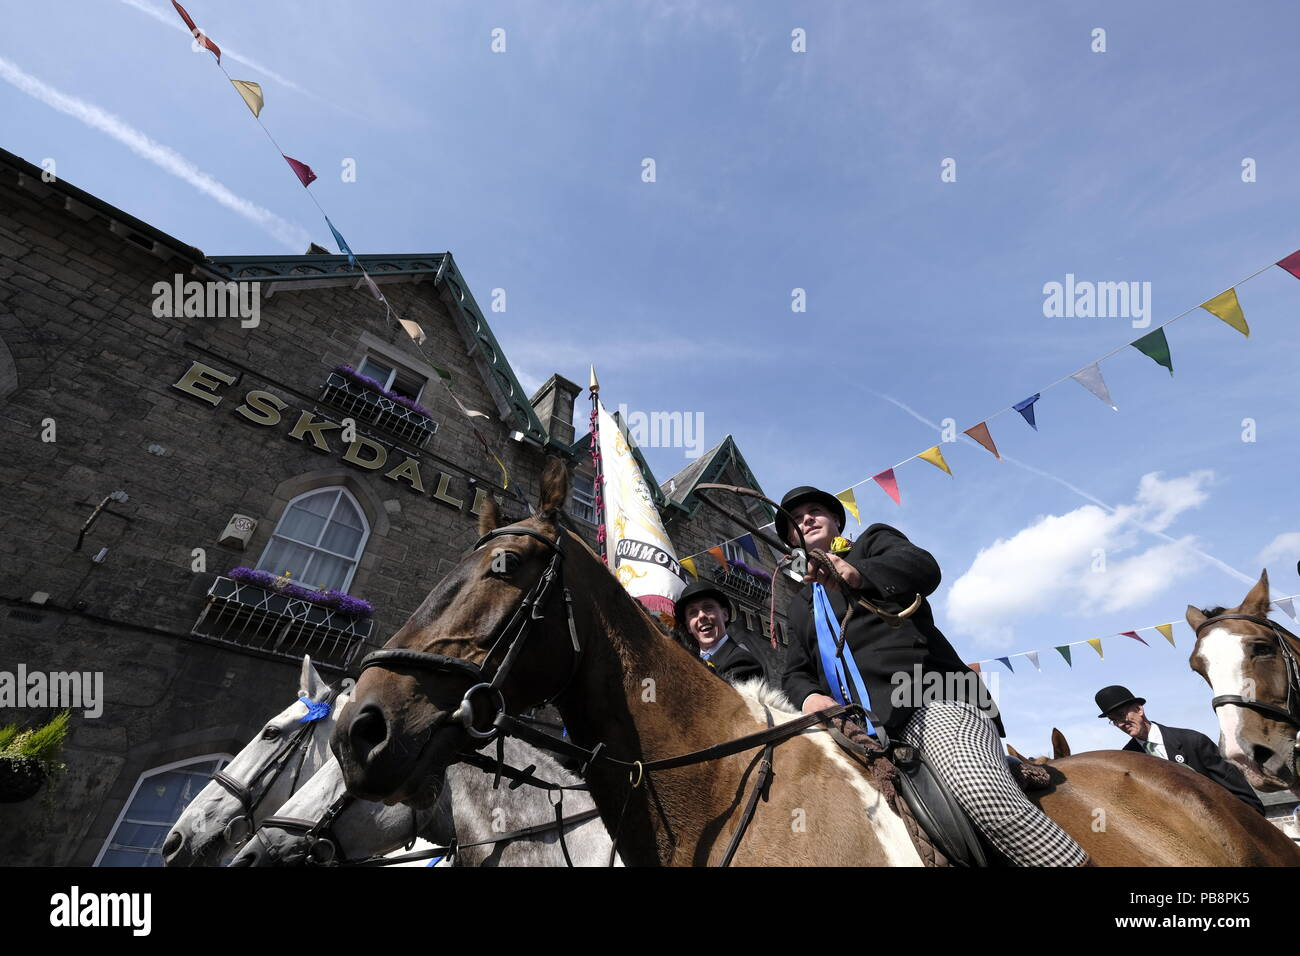 Langholm, Scotland, UK. 27th July, 2018.    Langholm Common Riding - 'Langholm's Great Day' Langholm Cornet Iain Little with his Left-hand man Simon Tweddle and Right-hand man Stuart Murray tasing the Eskdale Hotel in Langholm, 'The Muckle Toon' has seen tradition upheld for over 250 years with the Annual Langholm Common Riding which takes place every year on the last Friday in July, This year falling on Friday 27th.   Credit: Rob Gray/Alamy Live News - Stock Image